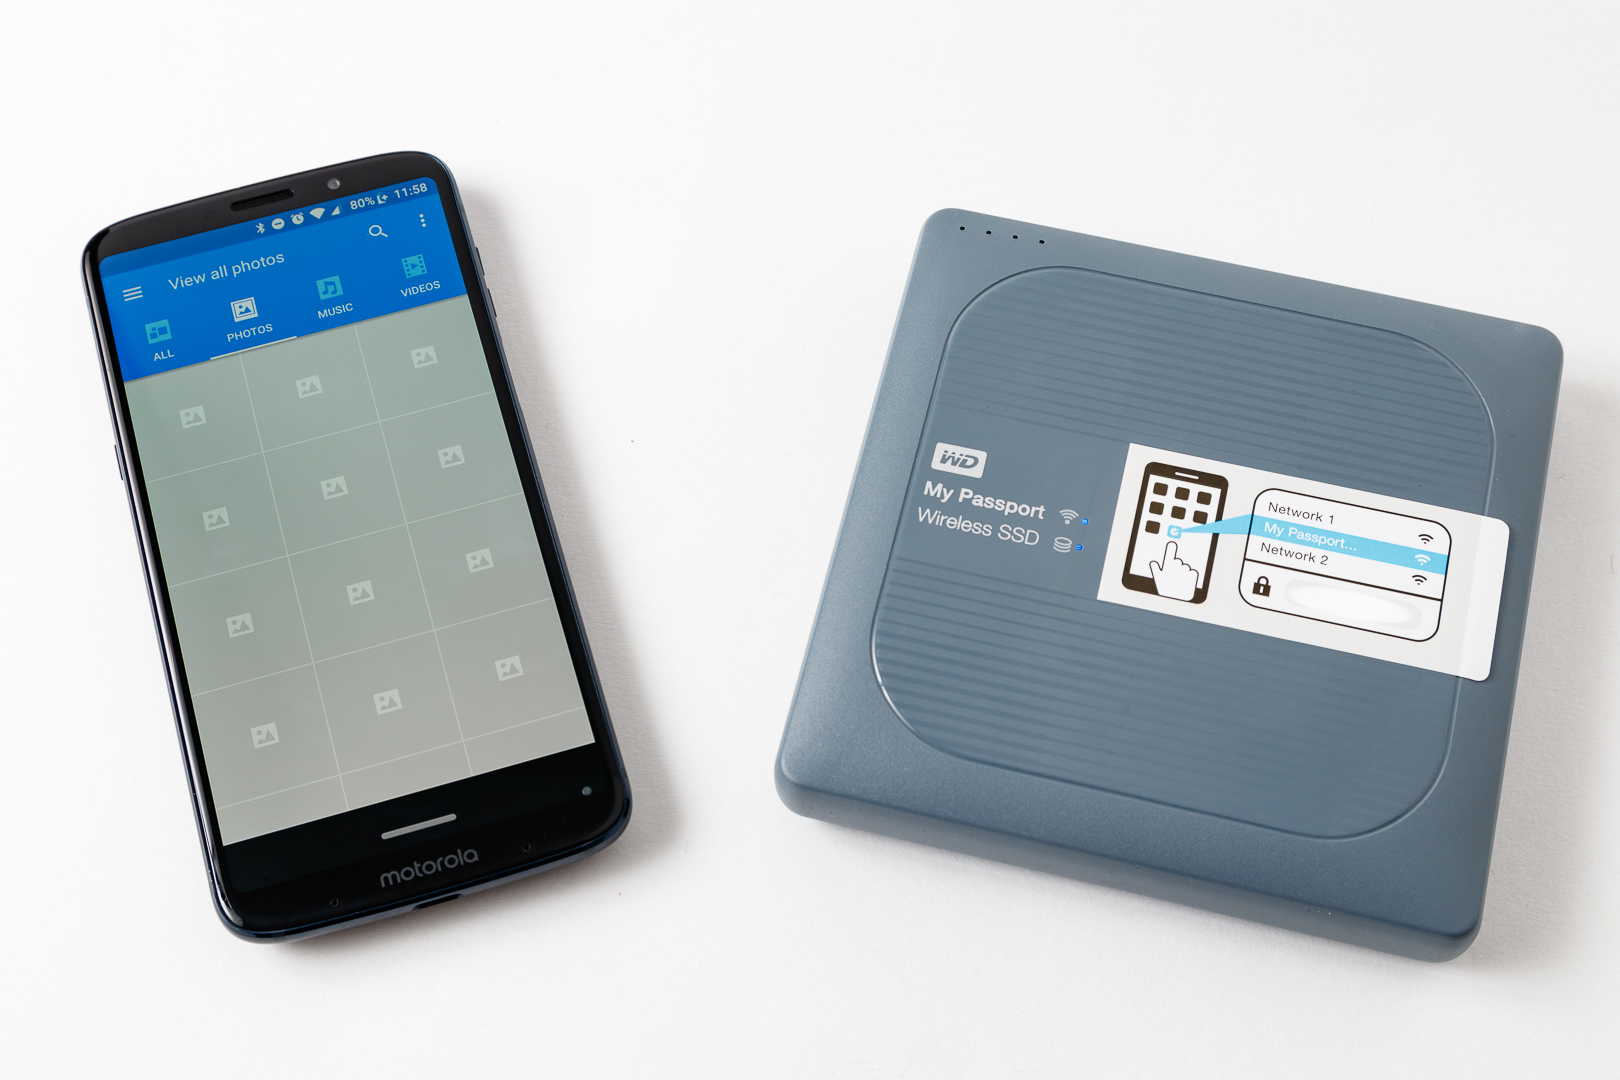 WD My Passport Wireless SSD Review: Network Storage On The Go